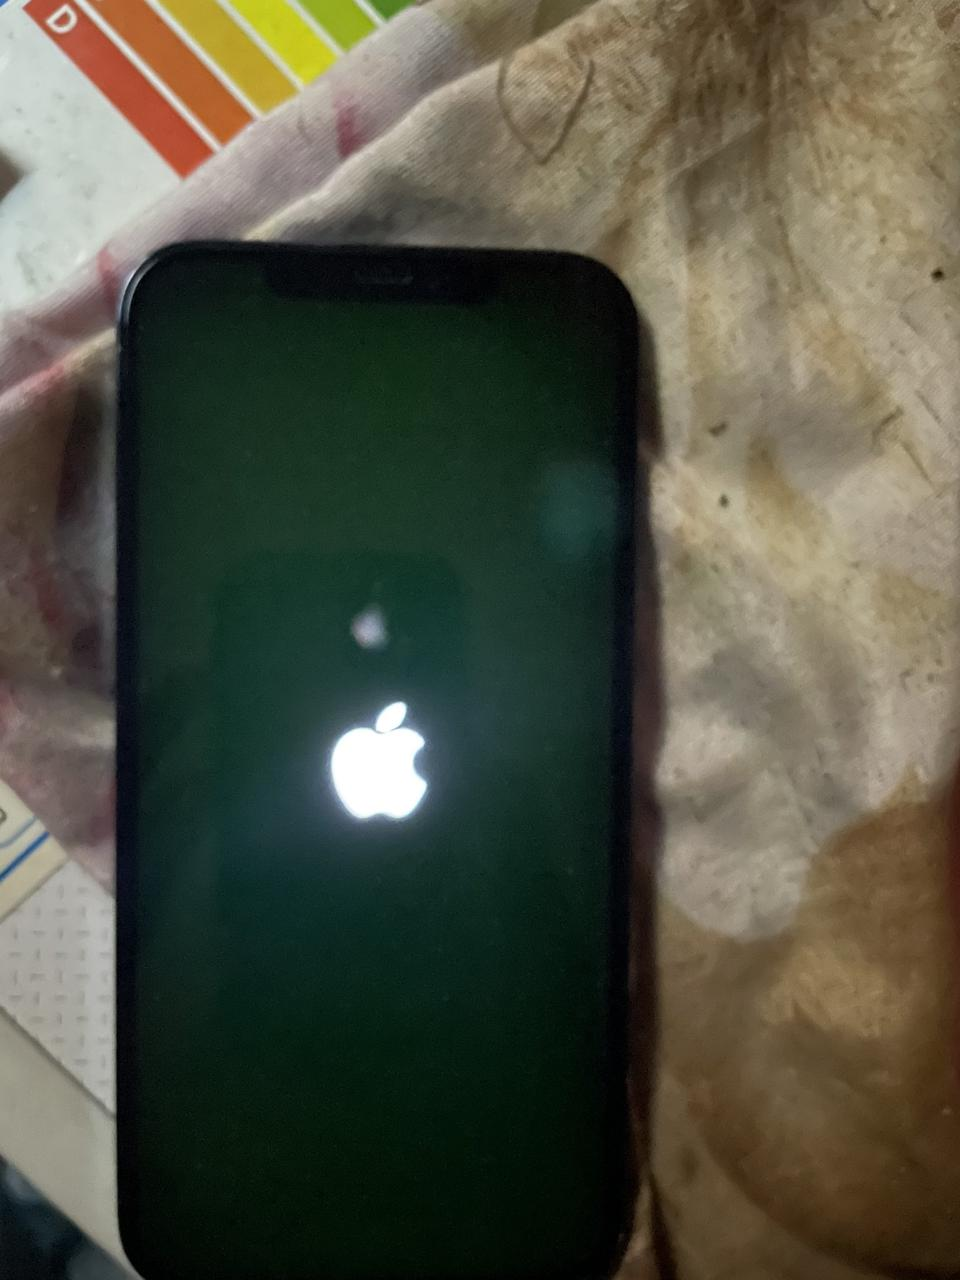 The iPhone 12's green tint issue.